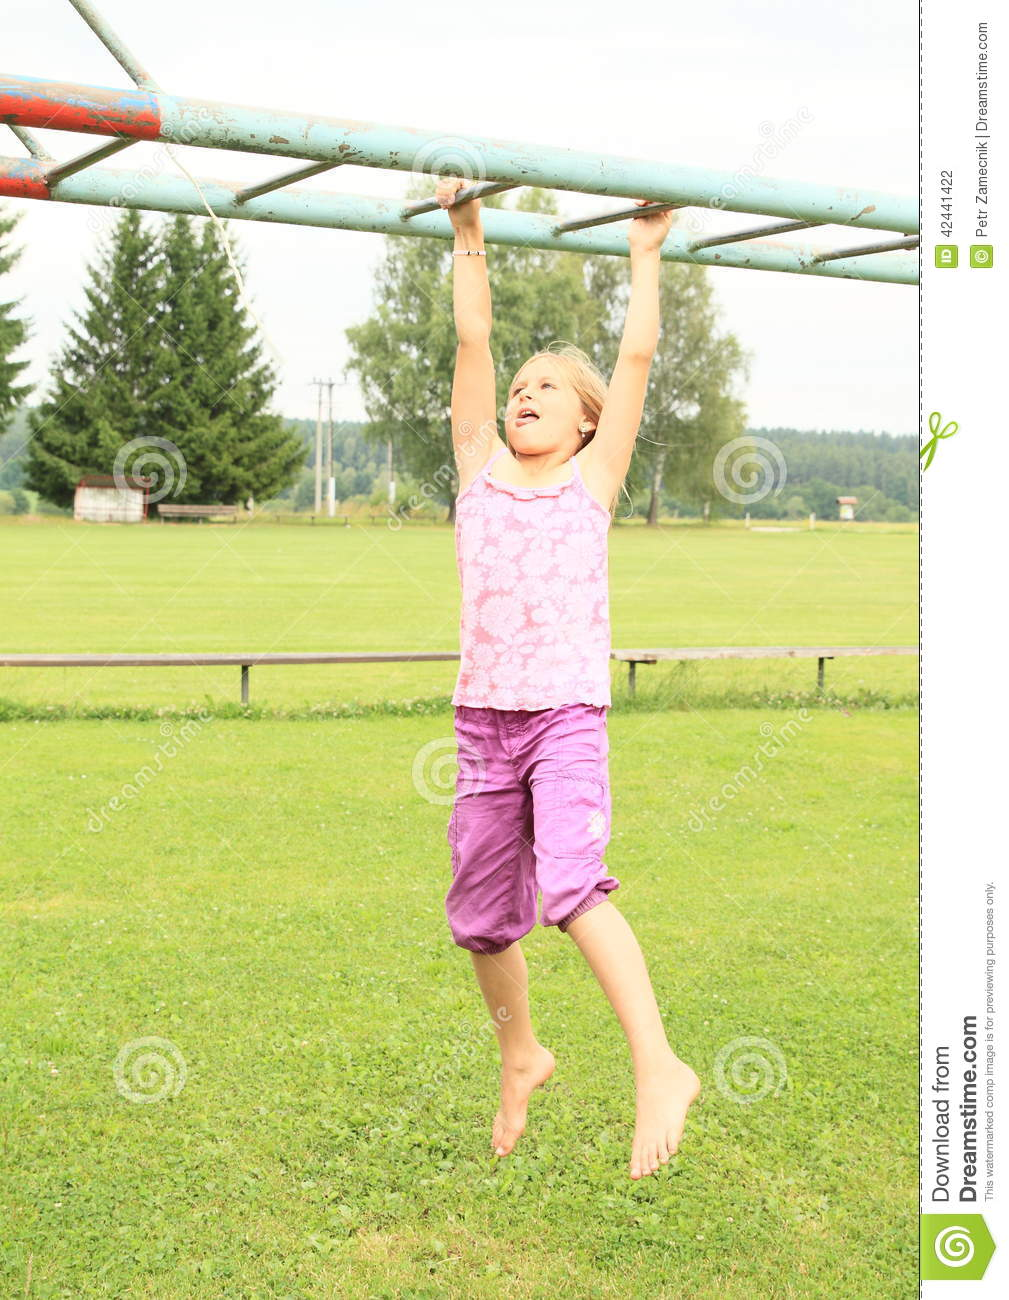 Girl hanging on obstacle course